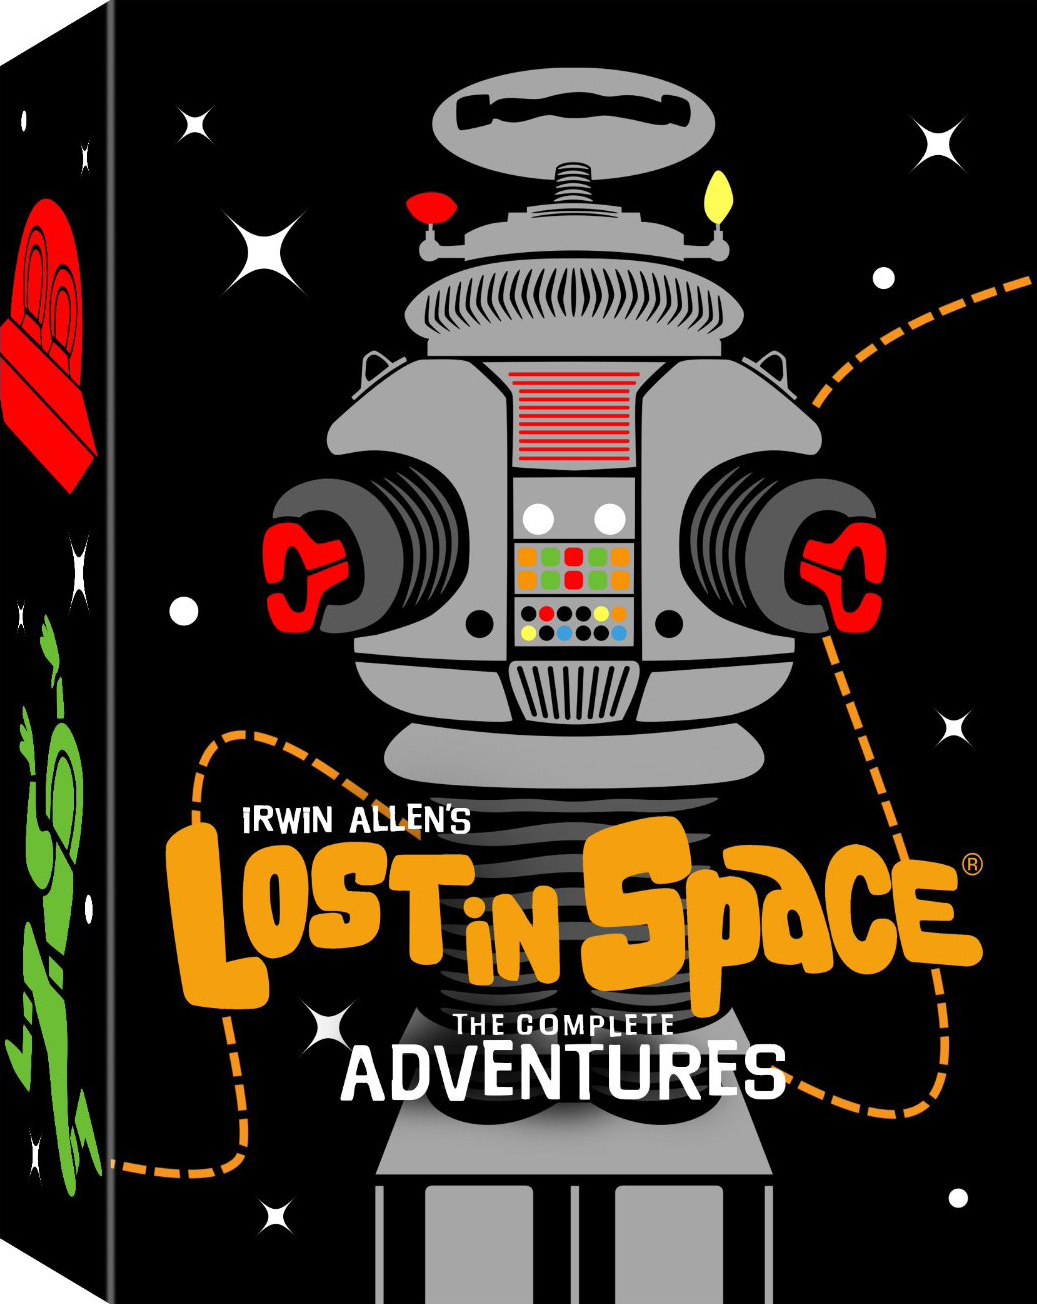 Lost in Space Blu-ray Collection